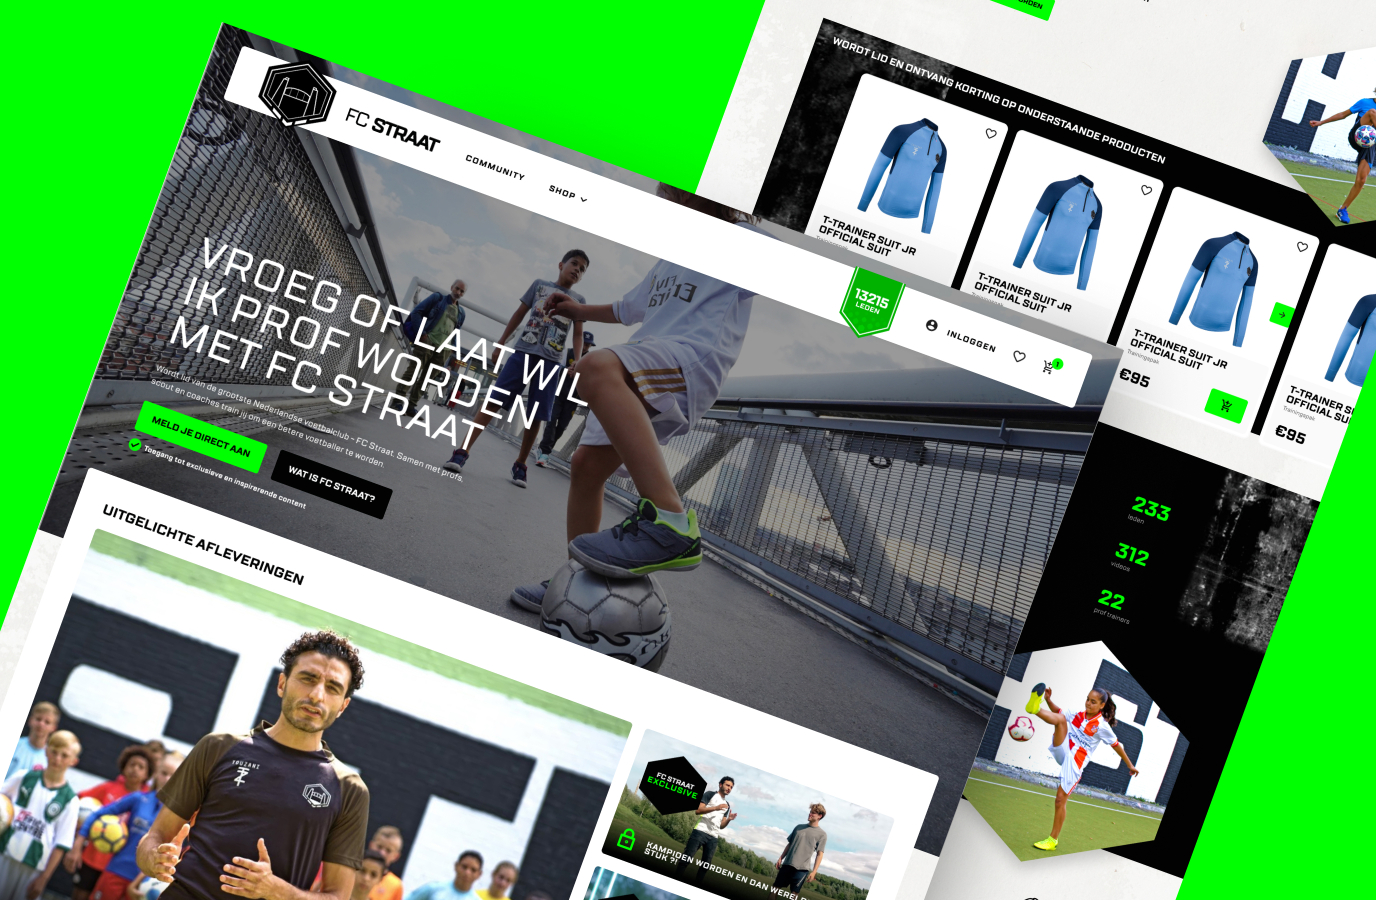 Designing the biggest online football club in NL - Digital Strategy